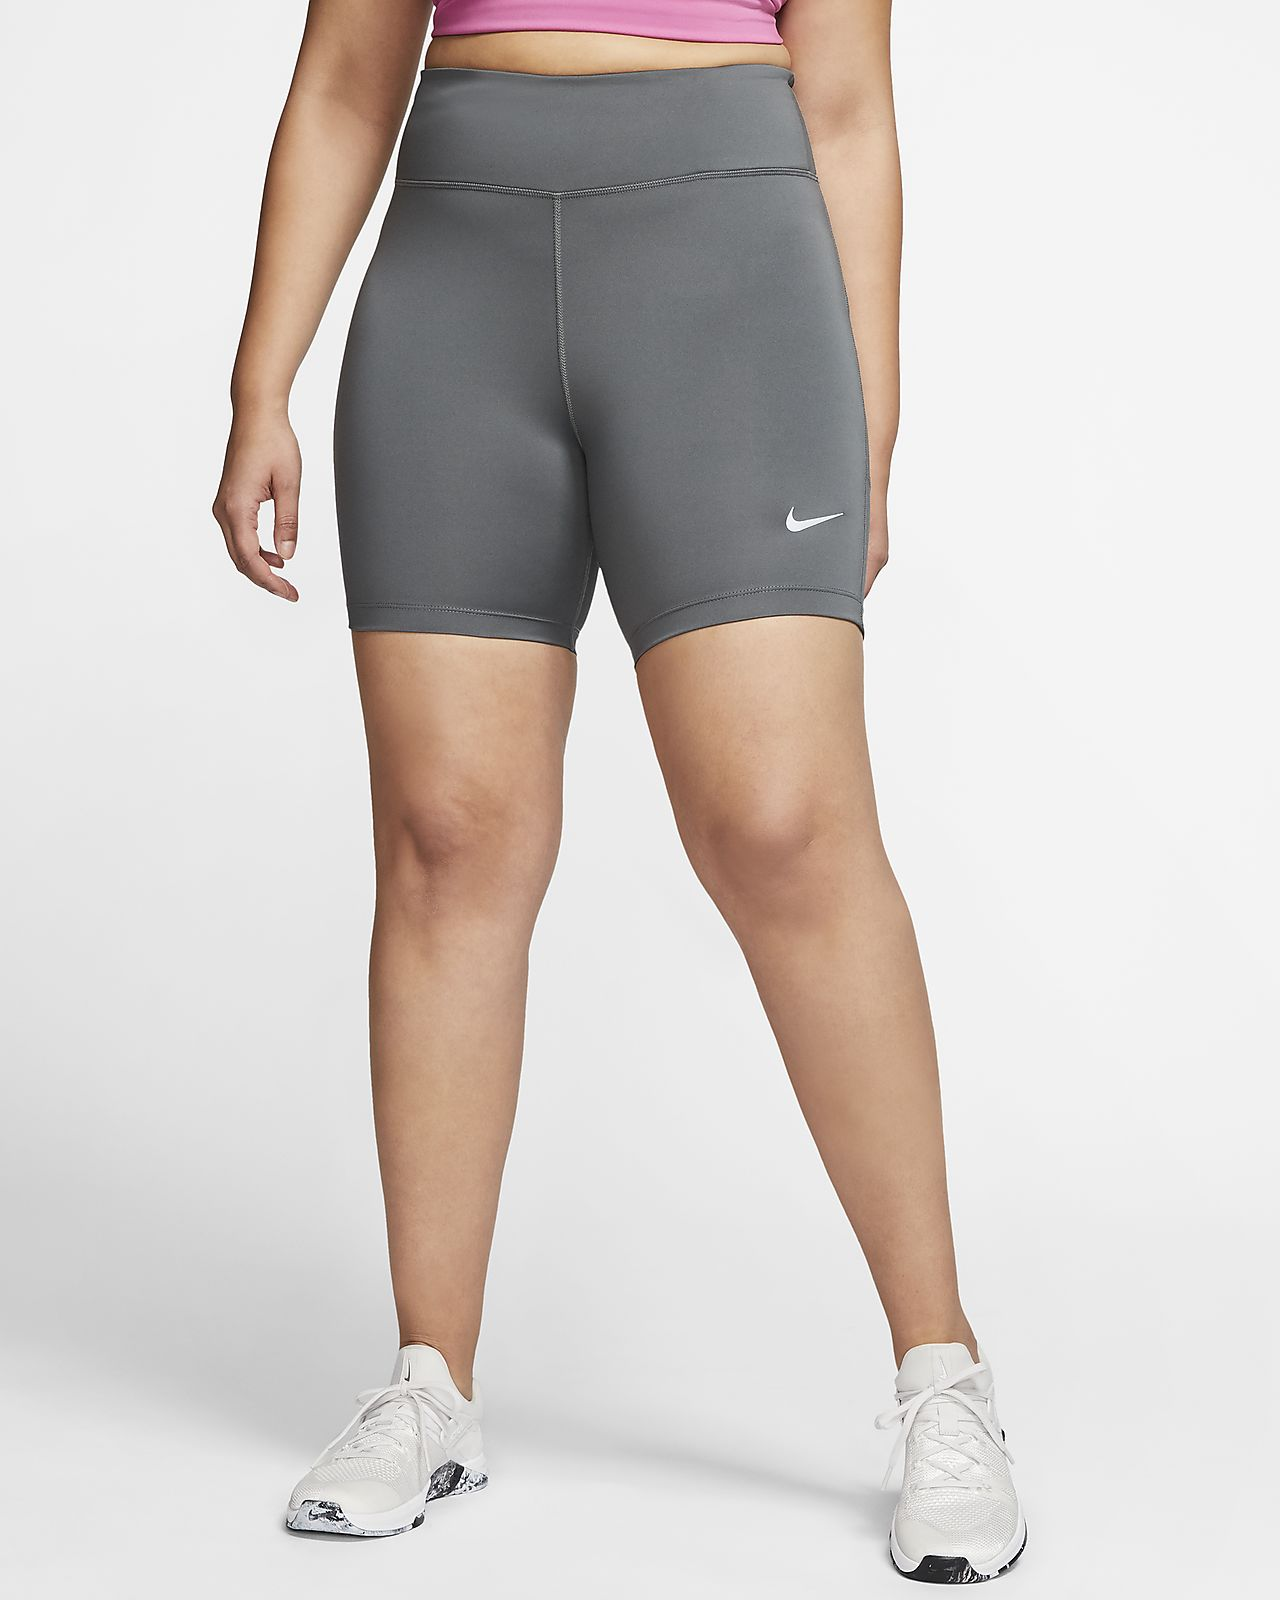 Nike Fast Women's 18cm (approx.) Running Shorts (Plus Size)